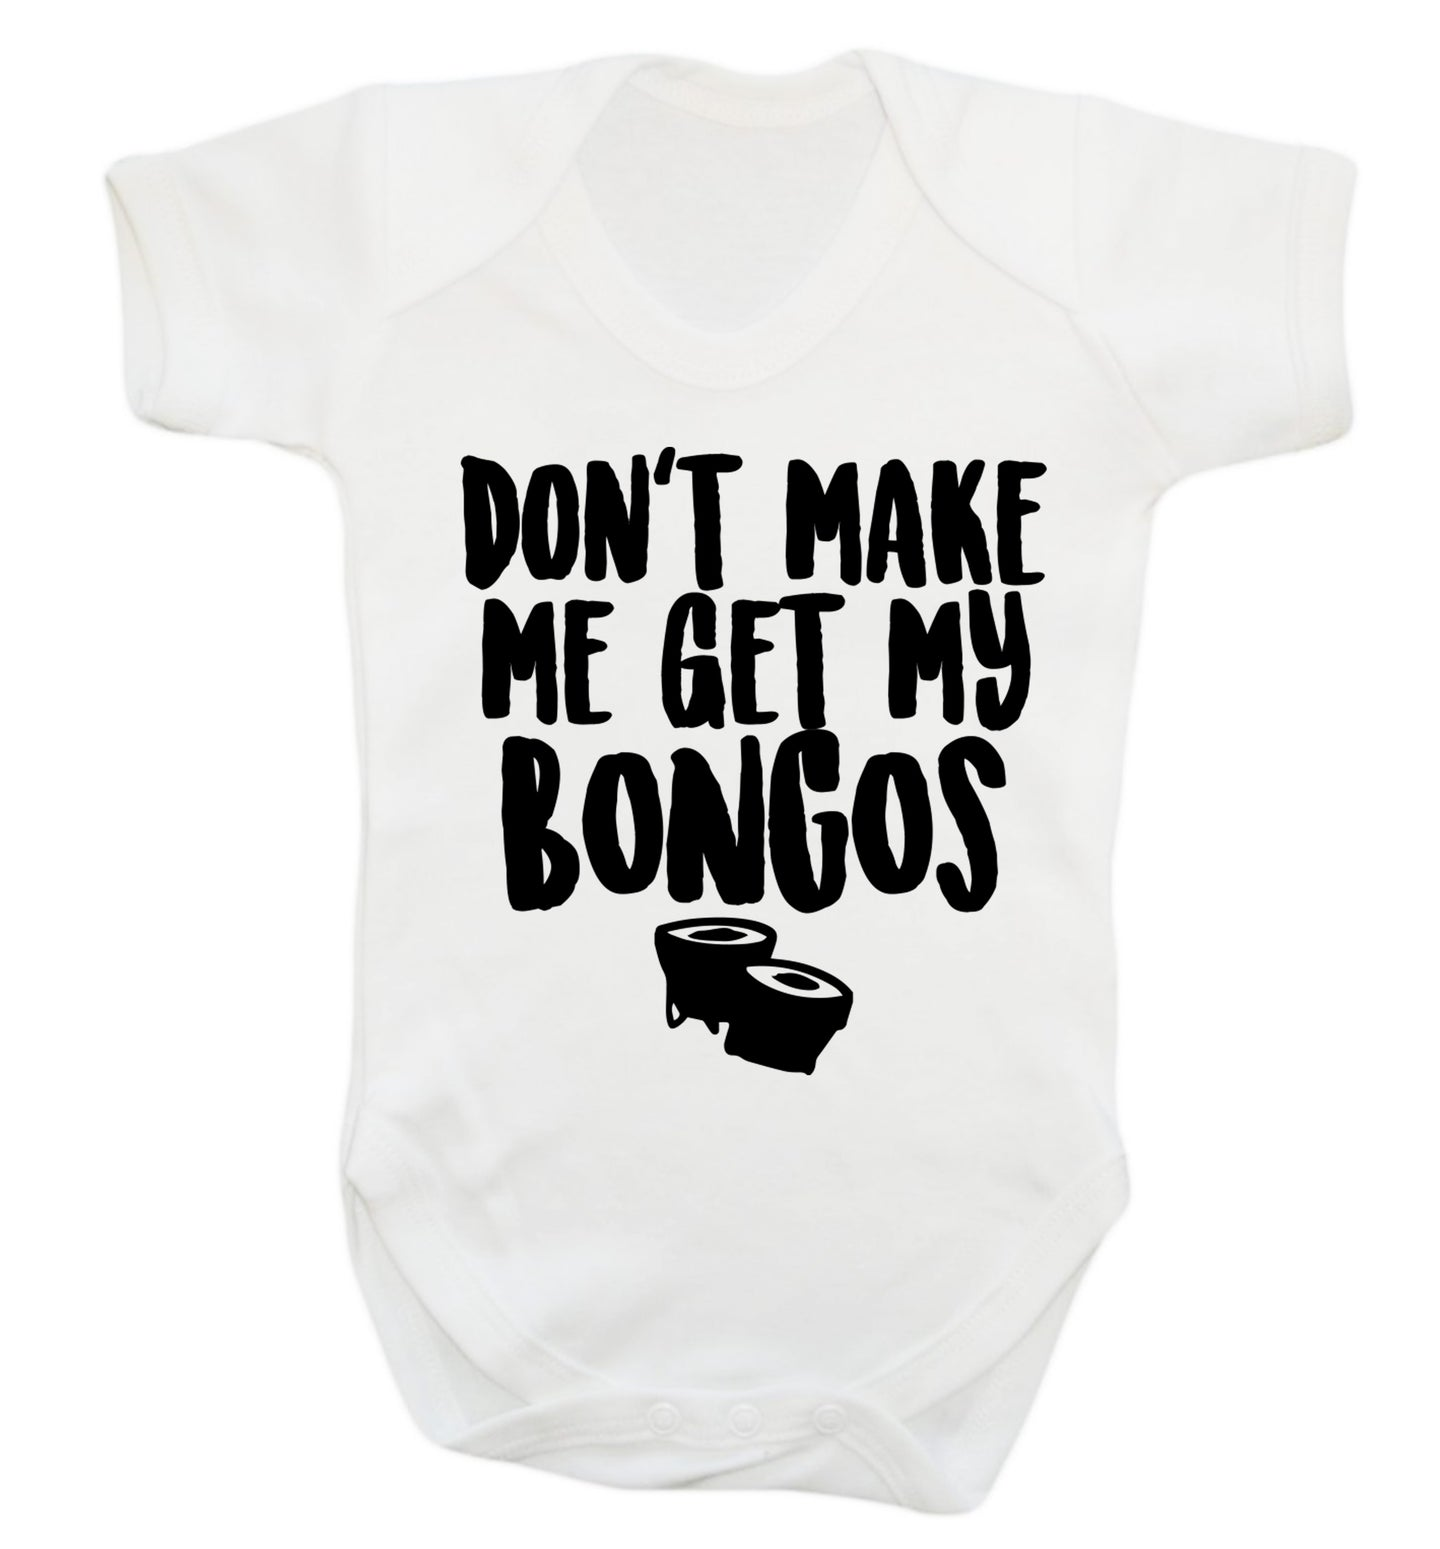 Don't make me get my bongos Baby Vest white 18-24 months